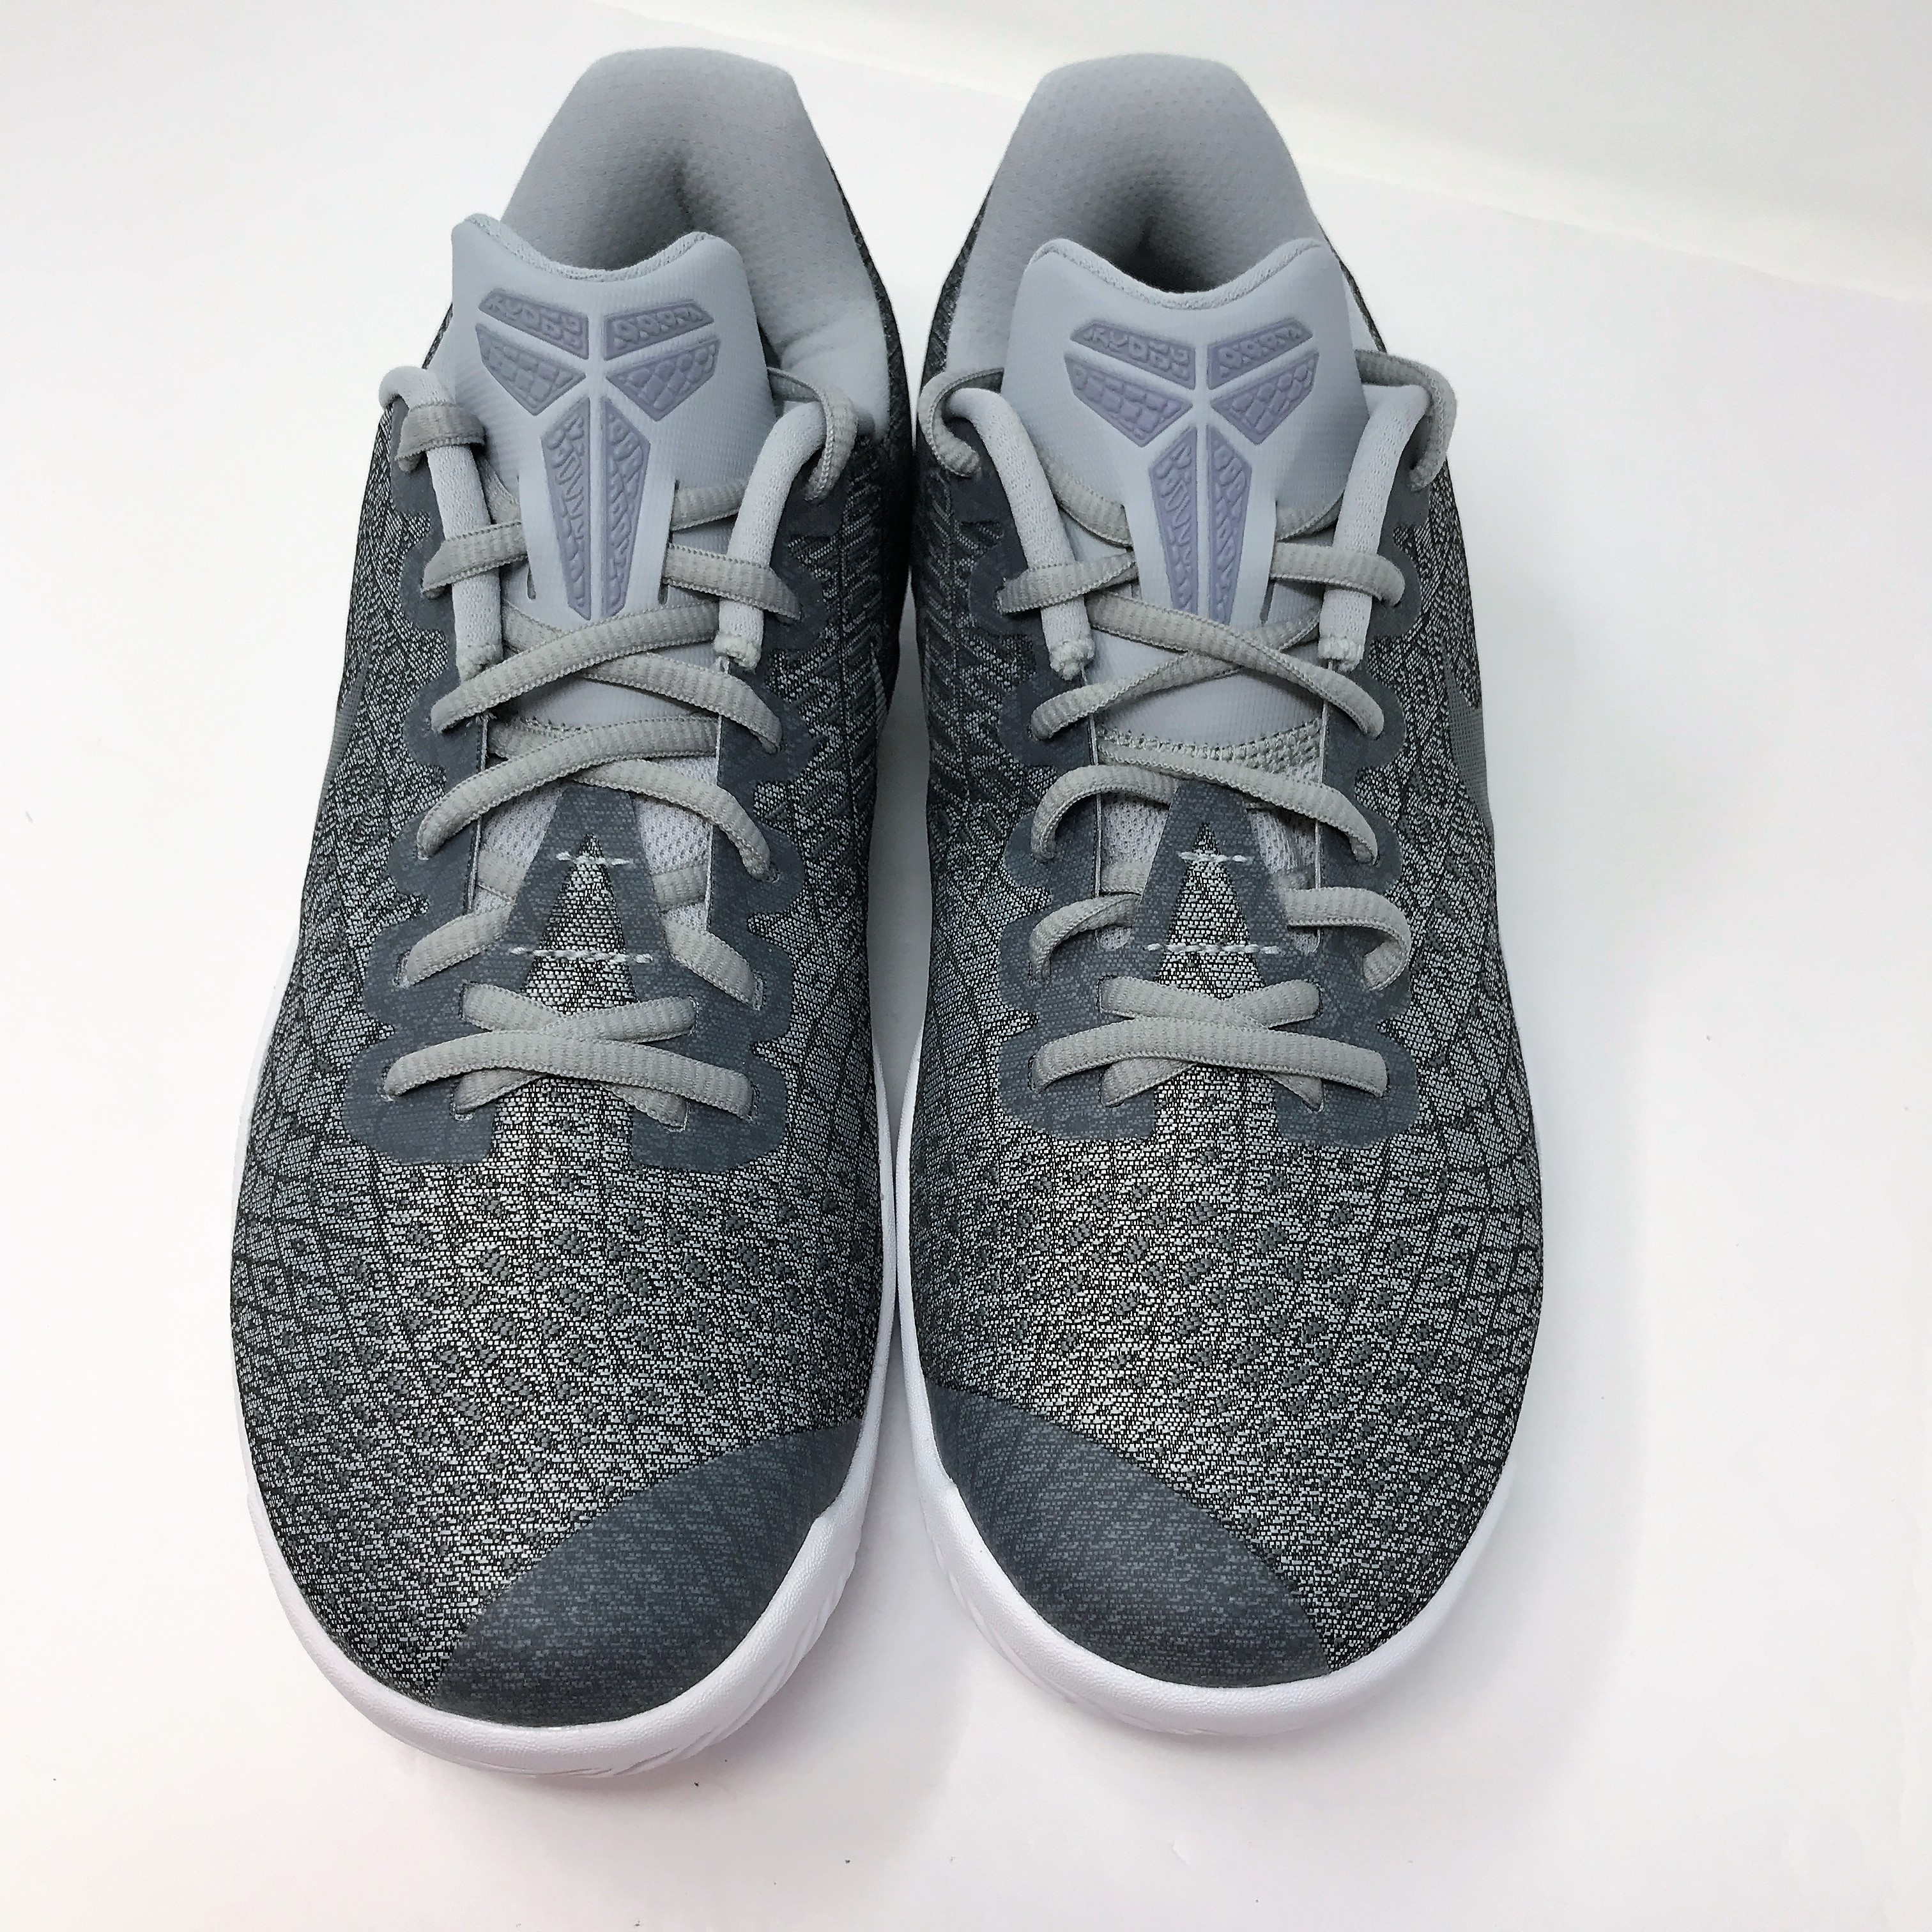 7a14174b695e Nike Mamba Instinct Men s US Size 8.5 Pure Platinum Basketball Shoes ...